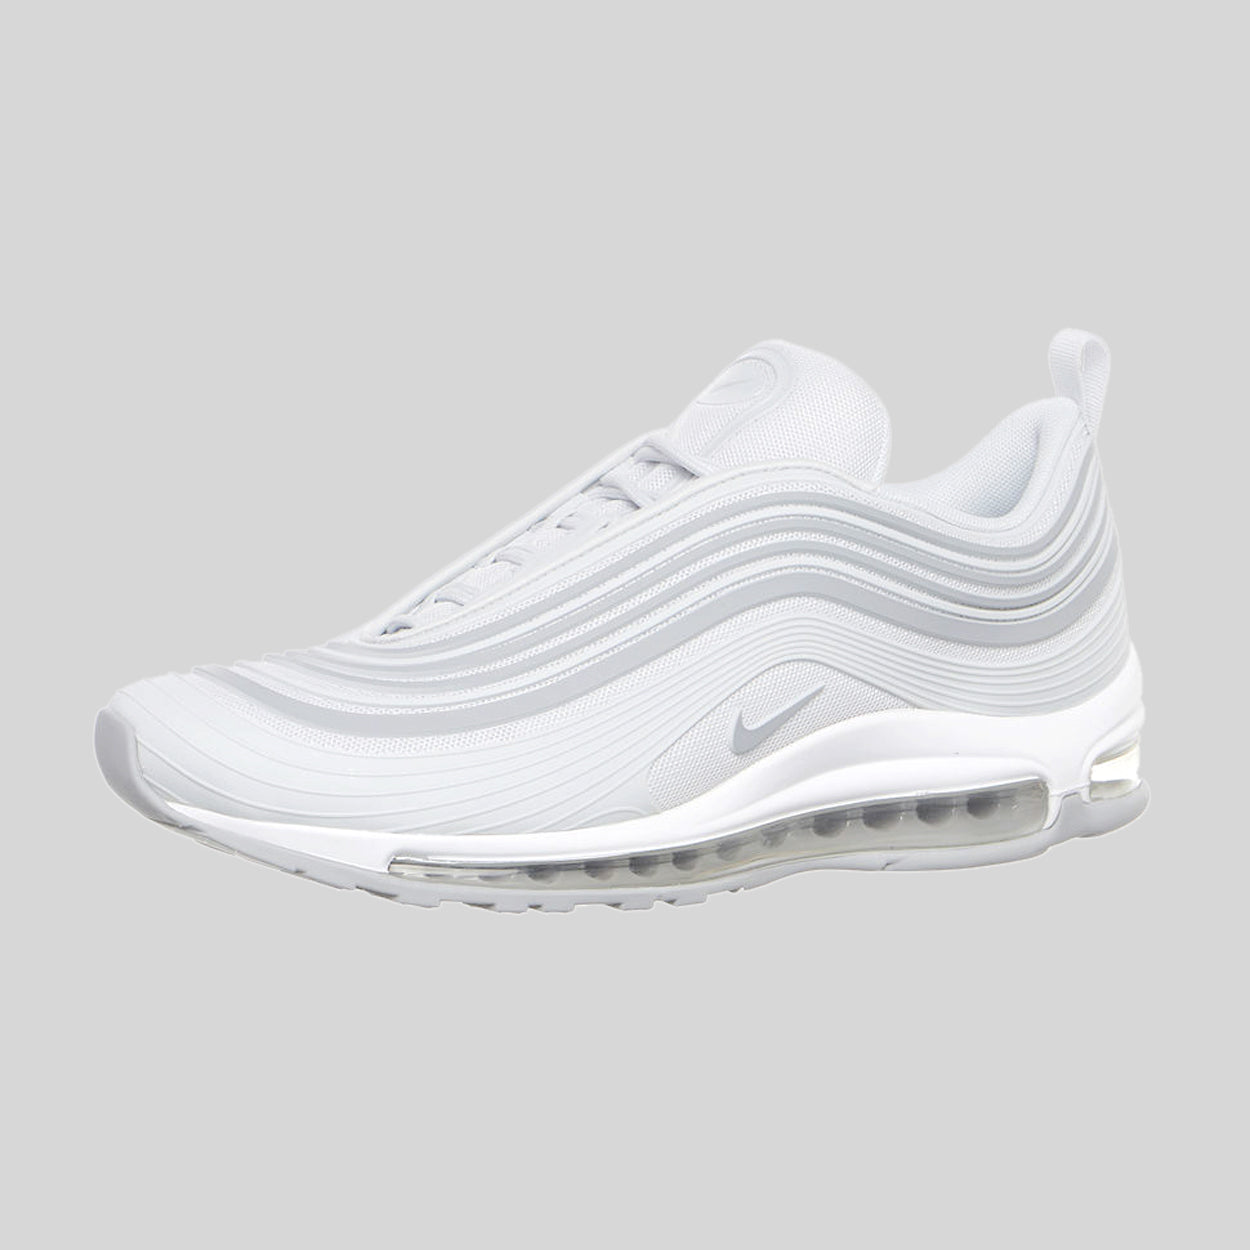 Nike AIR MAX 97 UL 17 PRM Pure Platinum Wolf Grey White (AH7581-001 ... 8a25e43b9